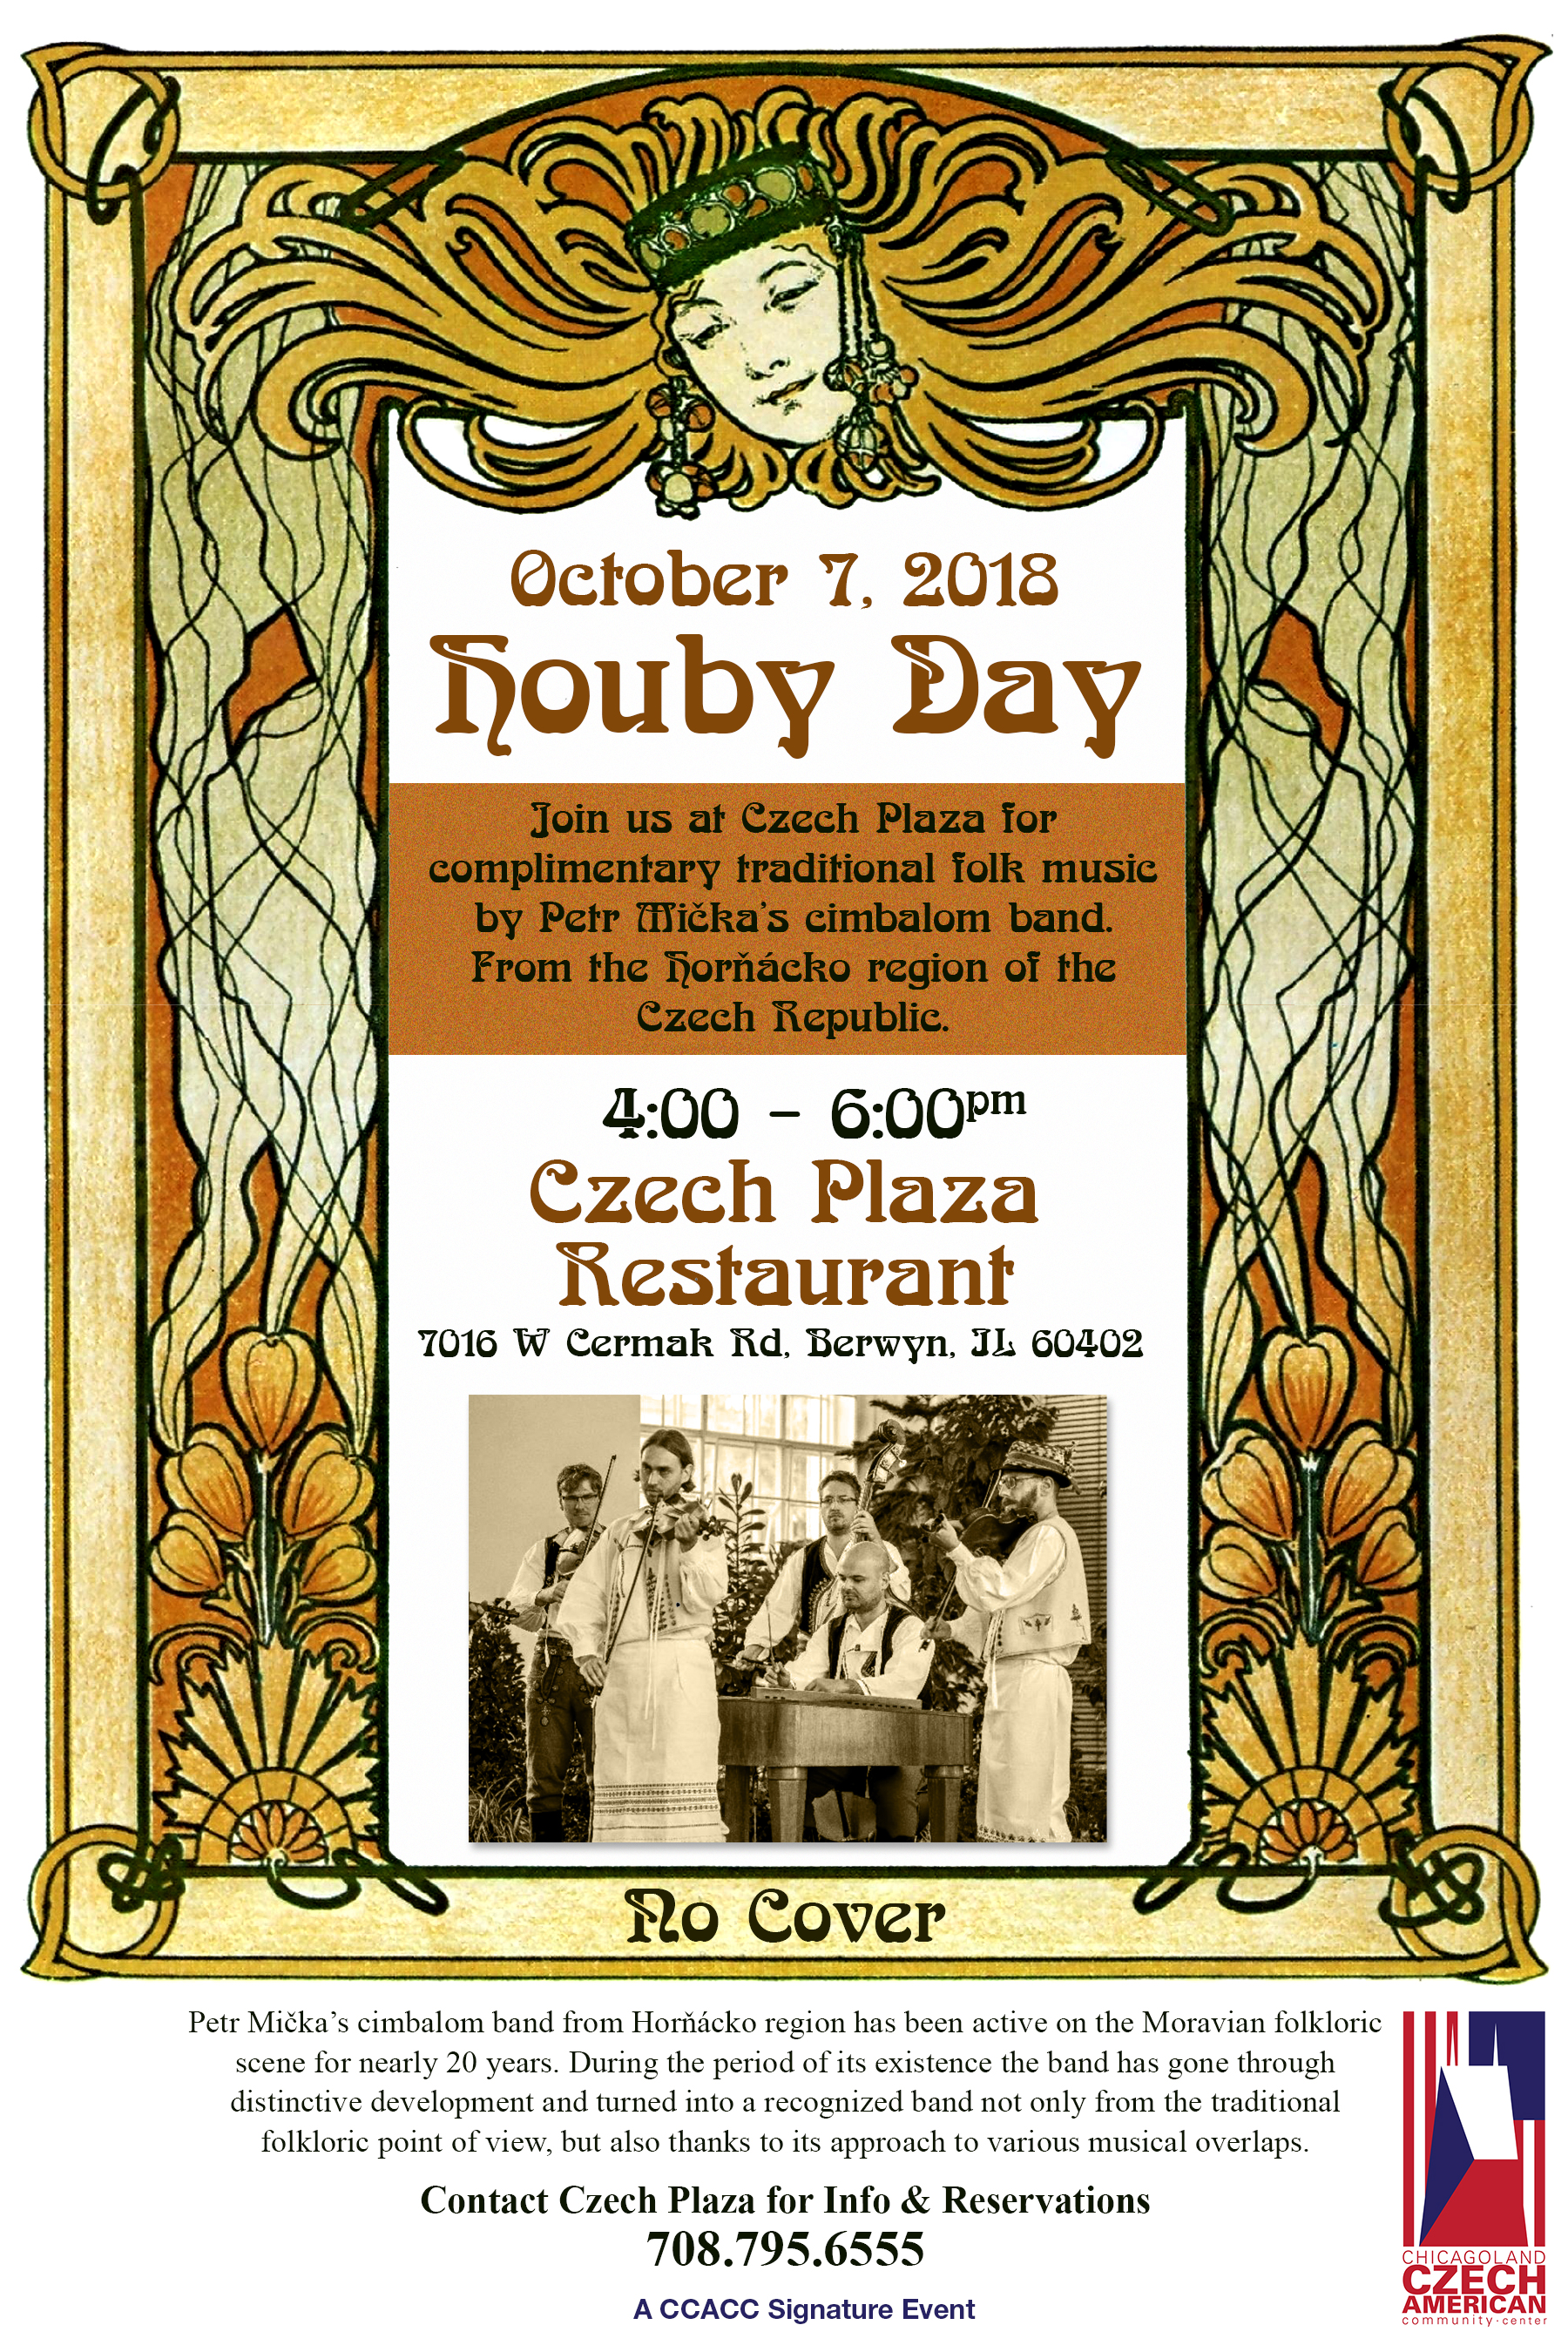 HoubyDay18_Flyer.jpg